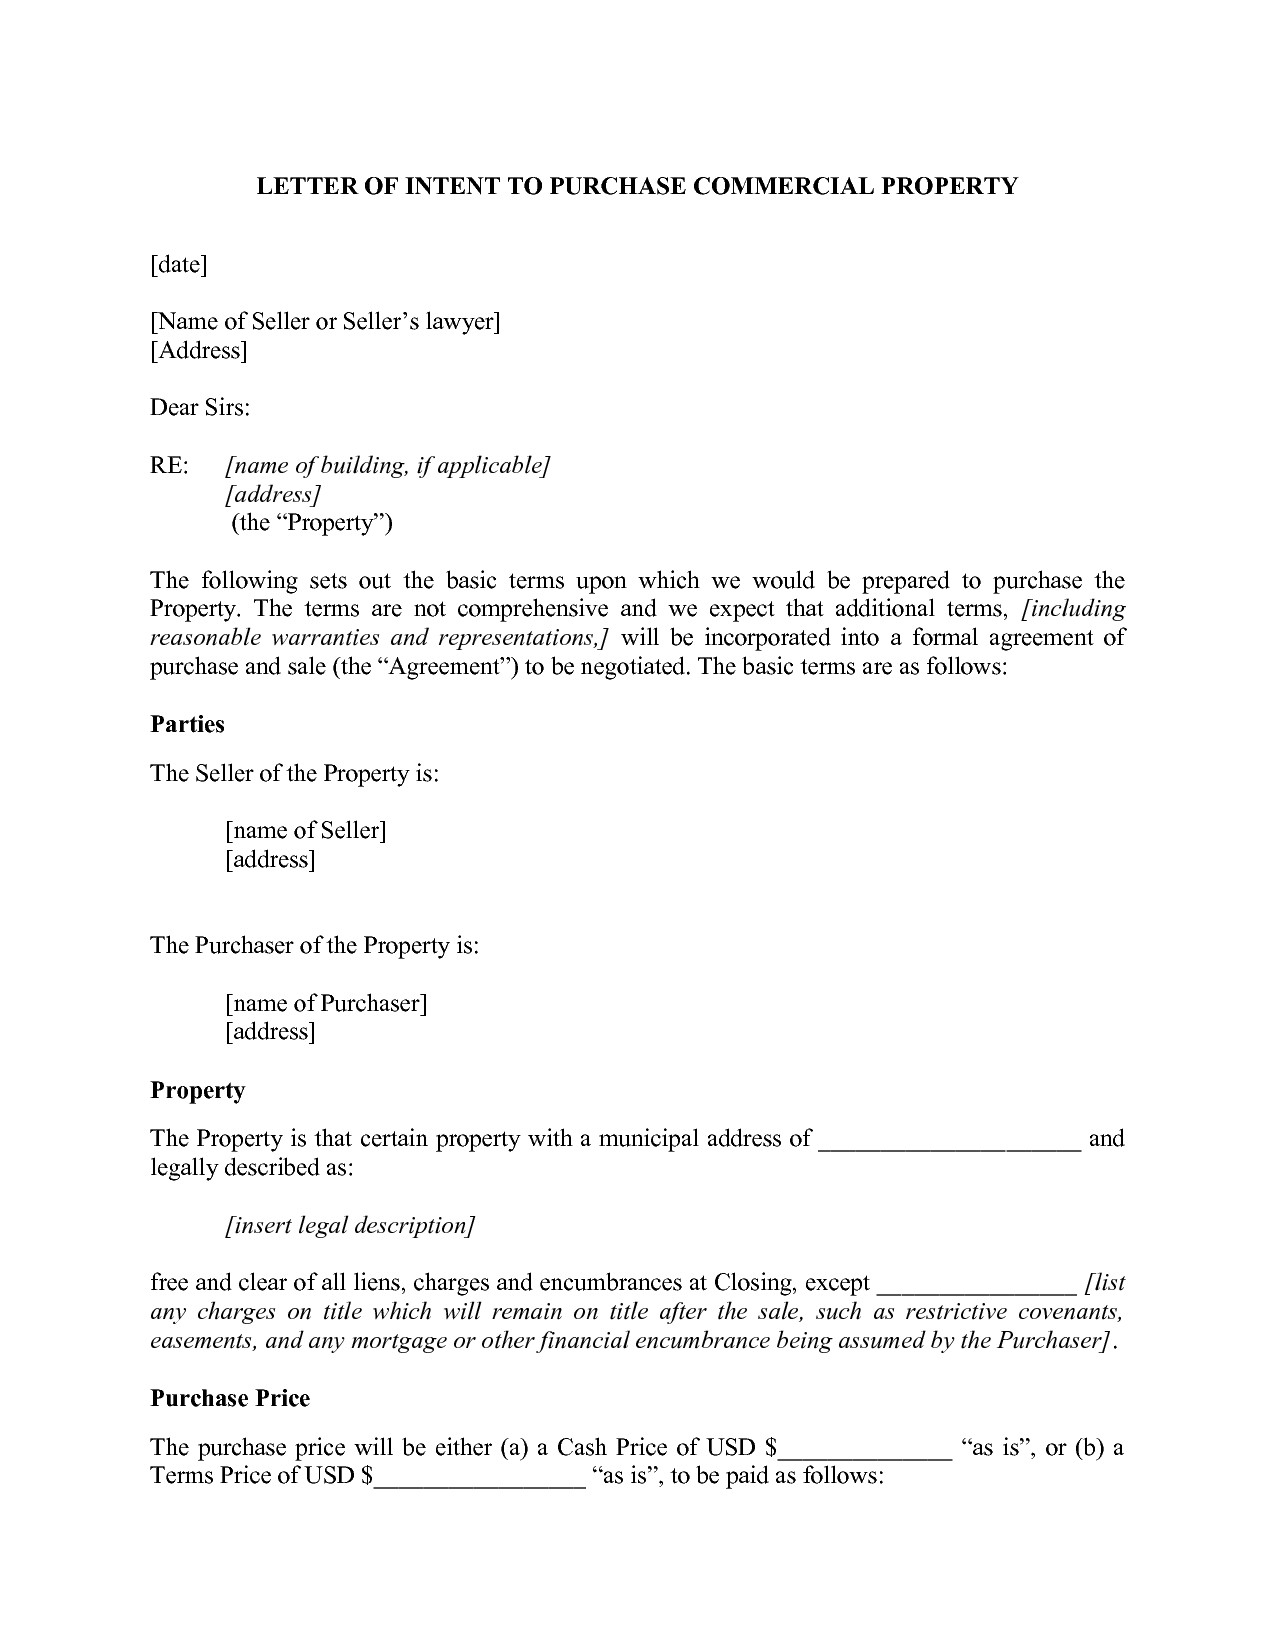 Letter Of Intent to Purchase Real Estate Template - Letter Nt Best S Property Template Purchase Real Estate